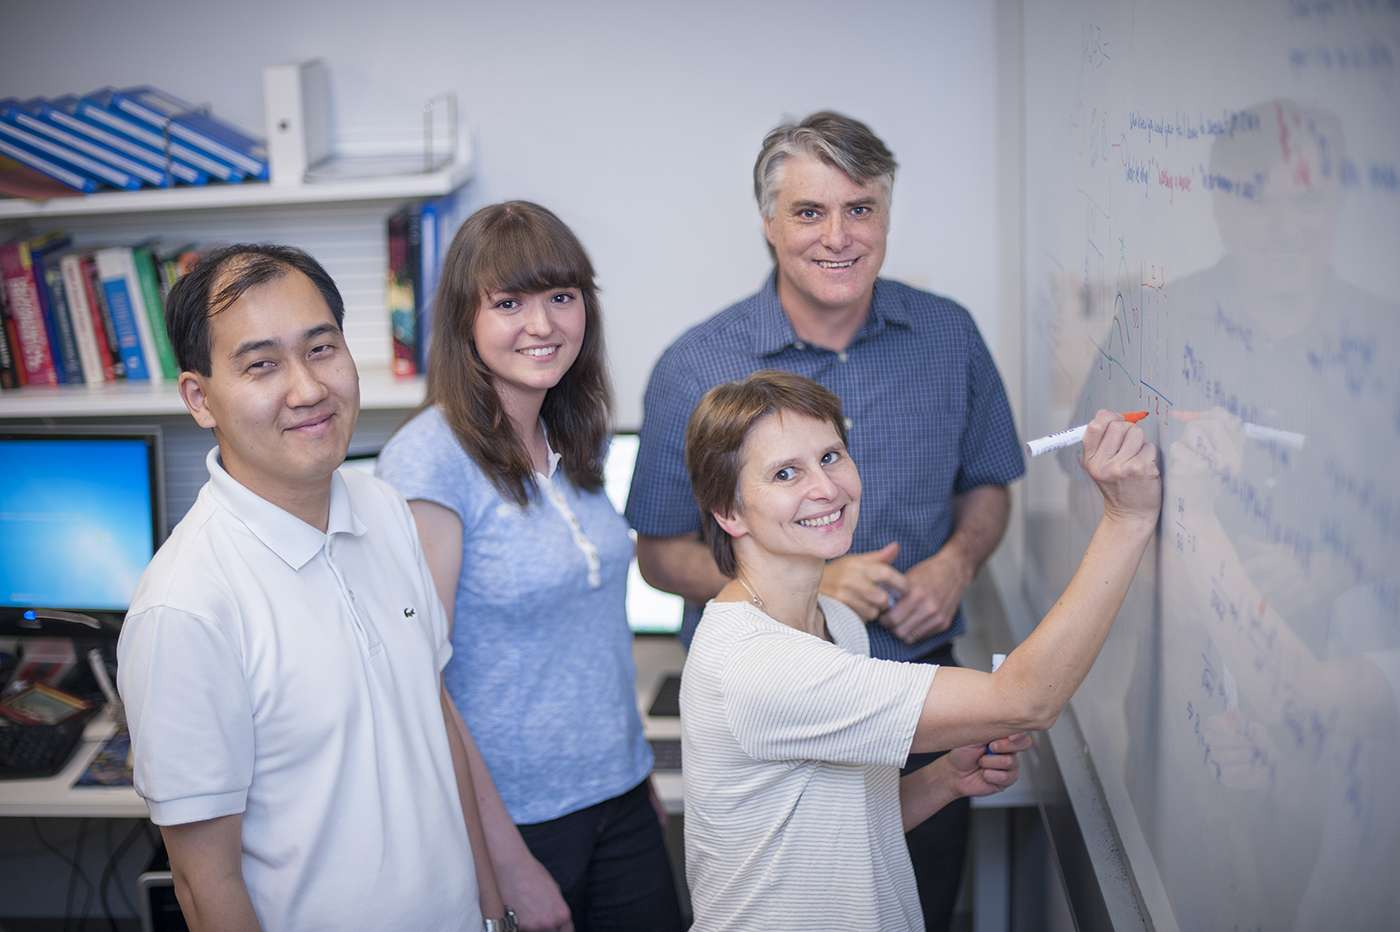 A group of researchers writing on a whiteboard.